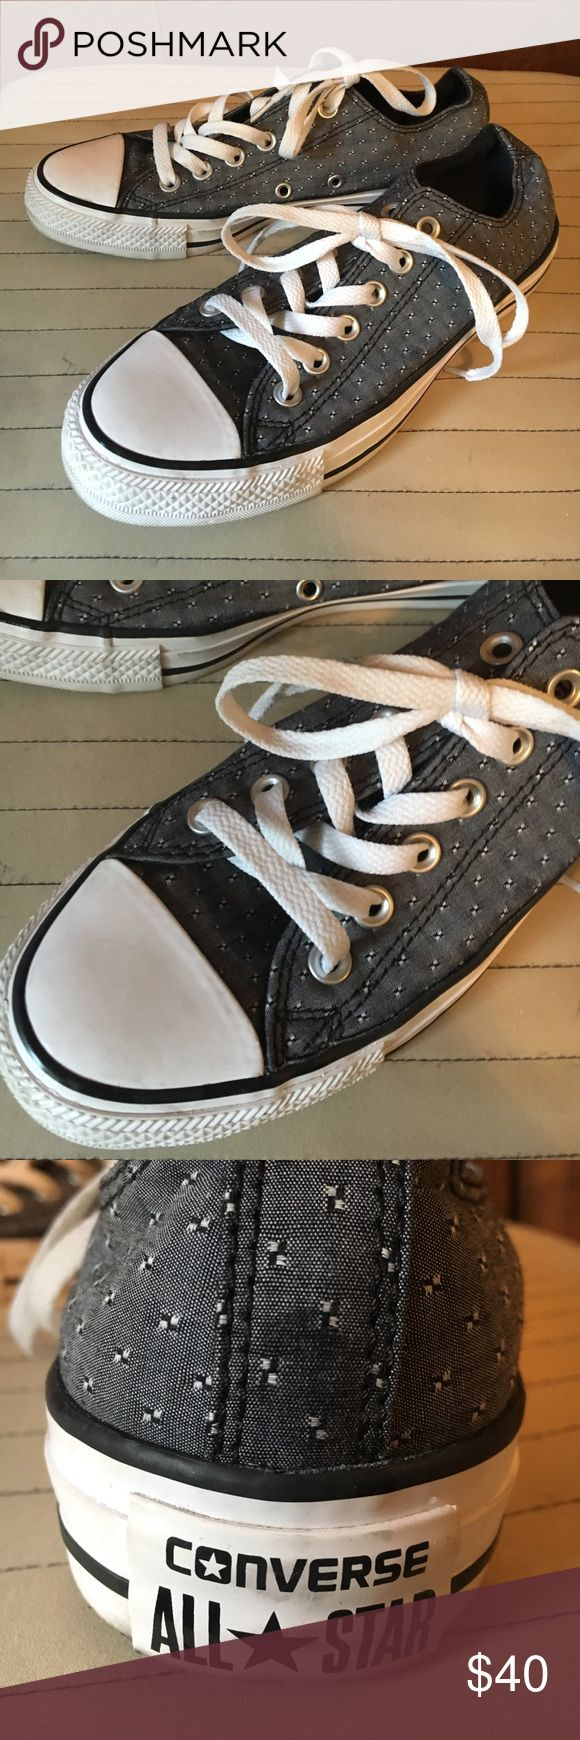 Grey & black converse! GREAT CONDITION! Size 7 Grey converse dotted with black checks. Cool pattern! Size 7. ONLY WORN ONE OR TWO TIMES! Cleaned & ready for sale! Please feel free to ask any questions! Converse Shoes Sneakers